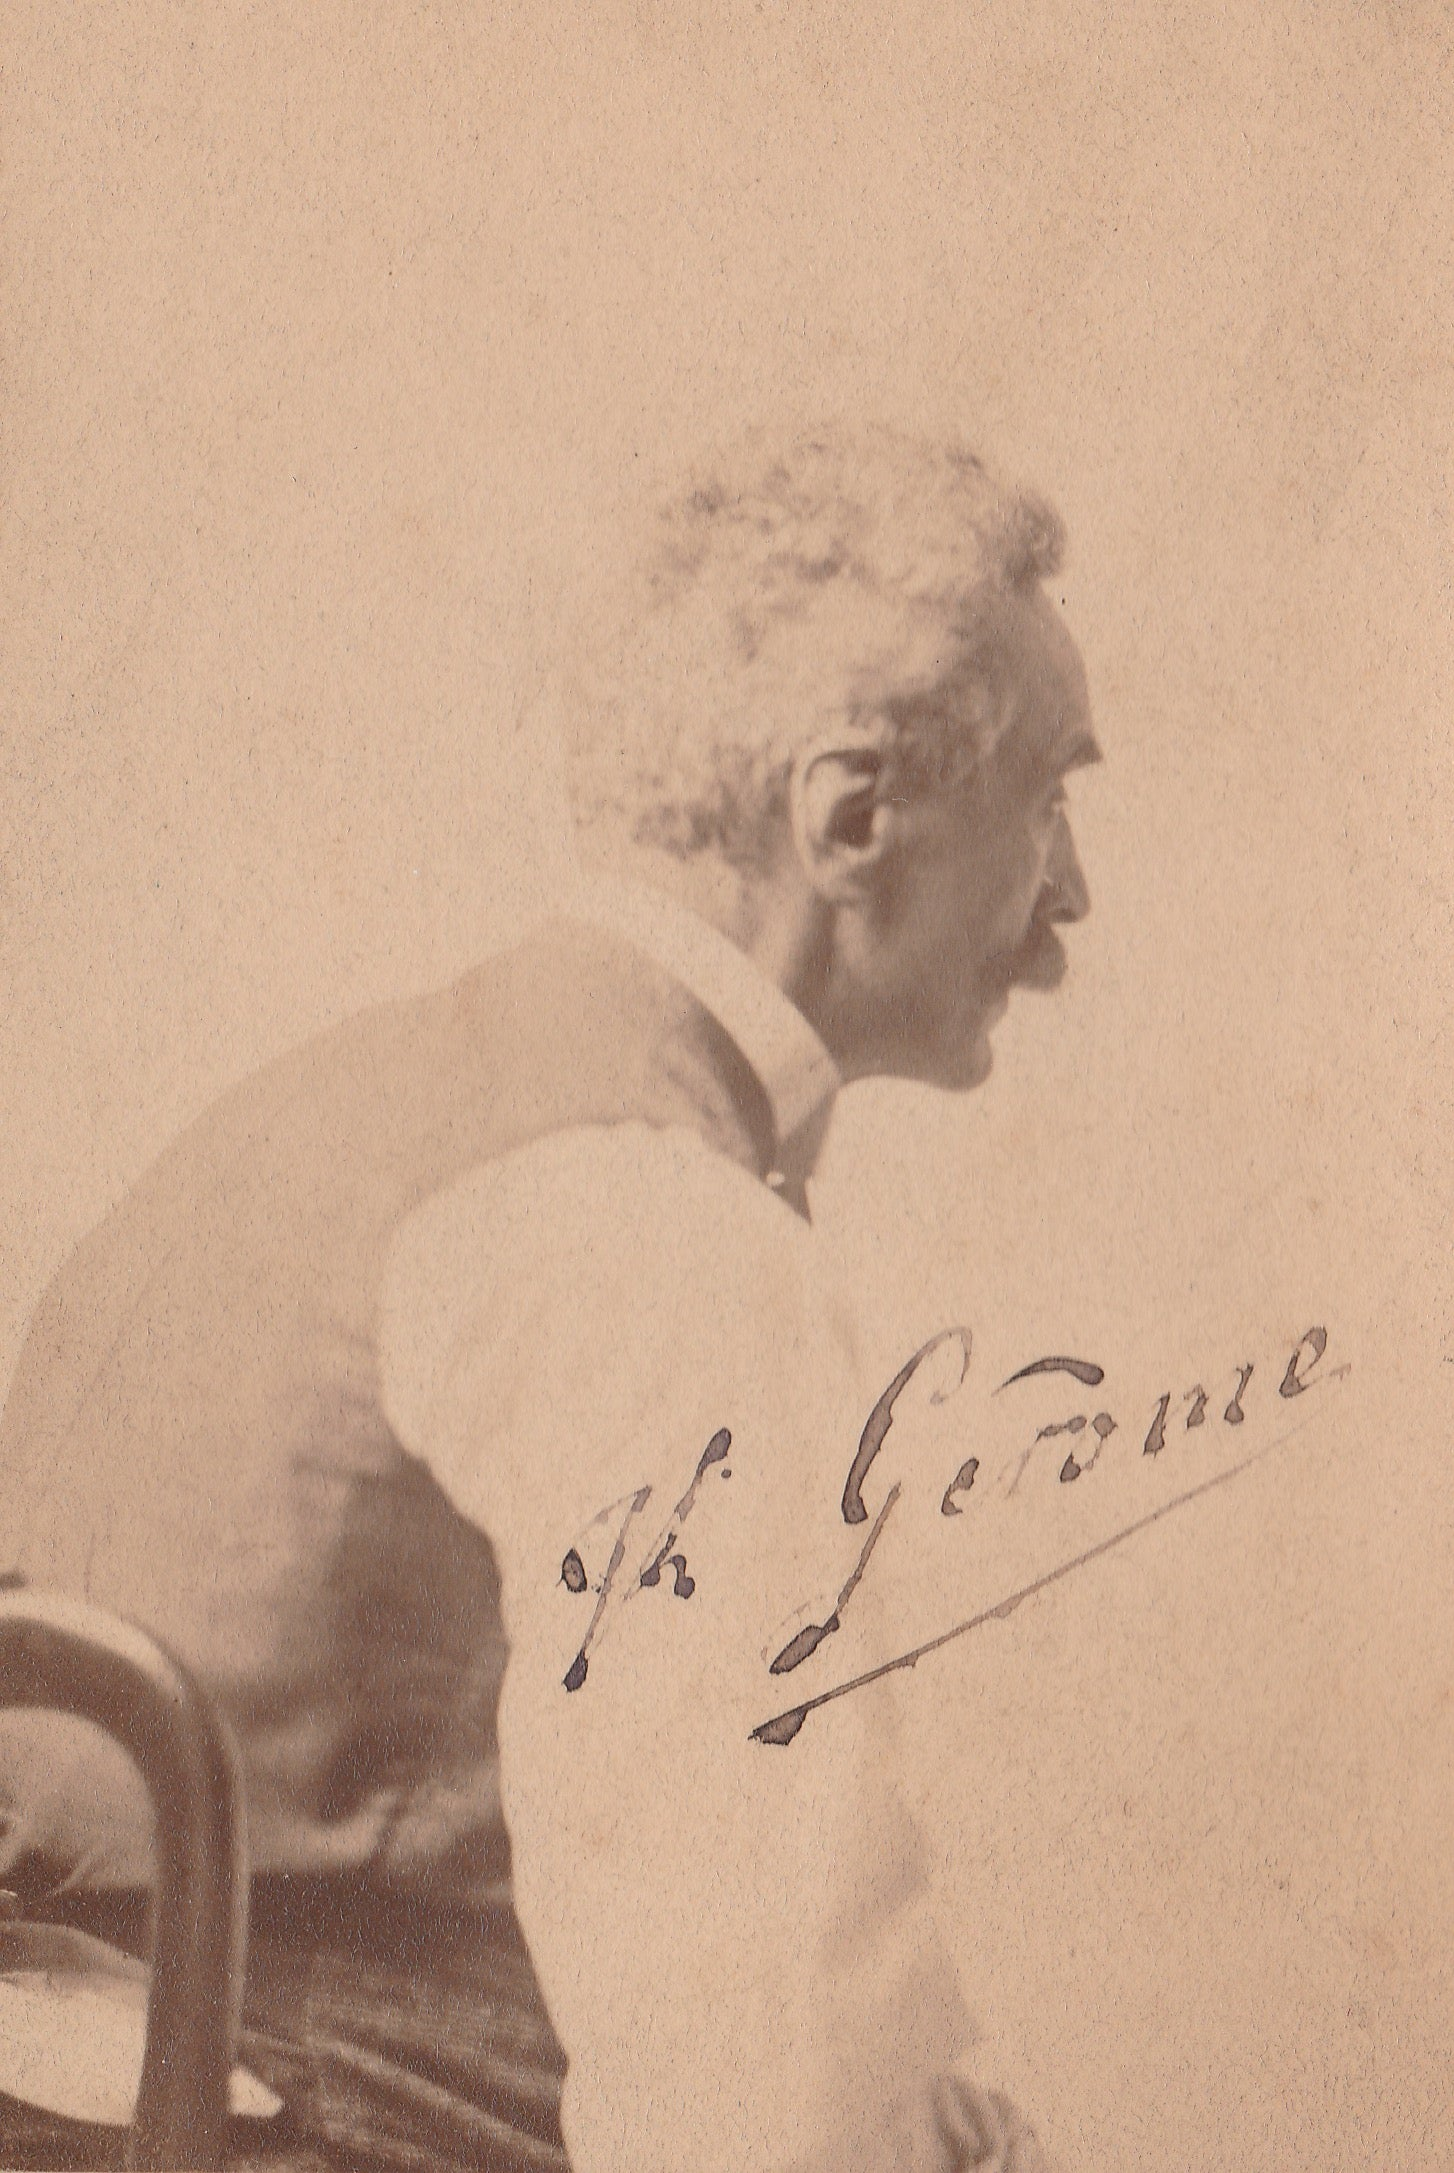 Image of Signed portrait of Jean-Léon Gérôme, painter of 'Phryné' ca. 1875